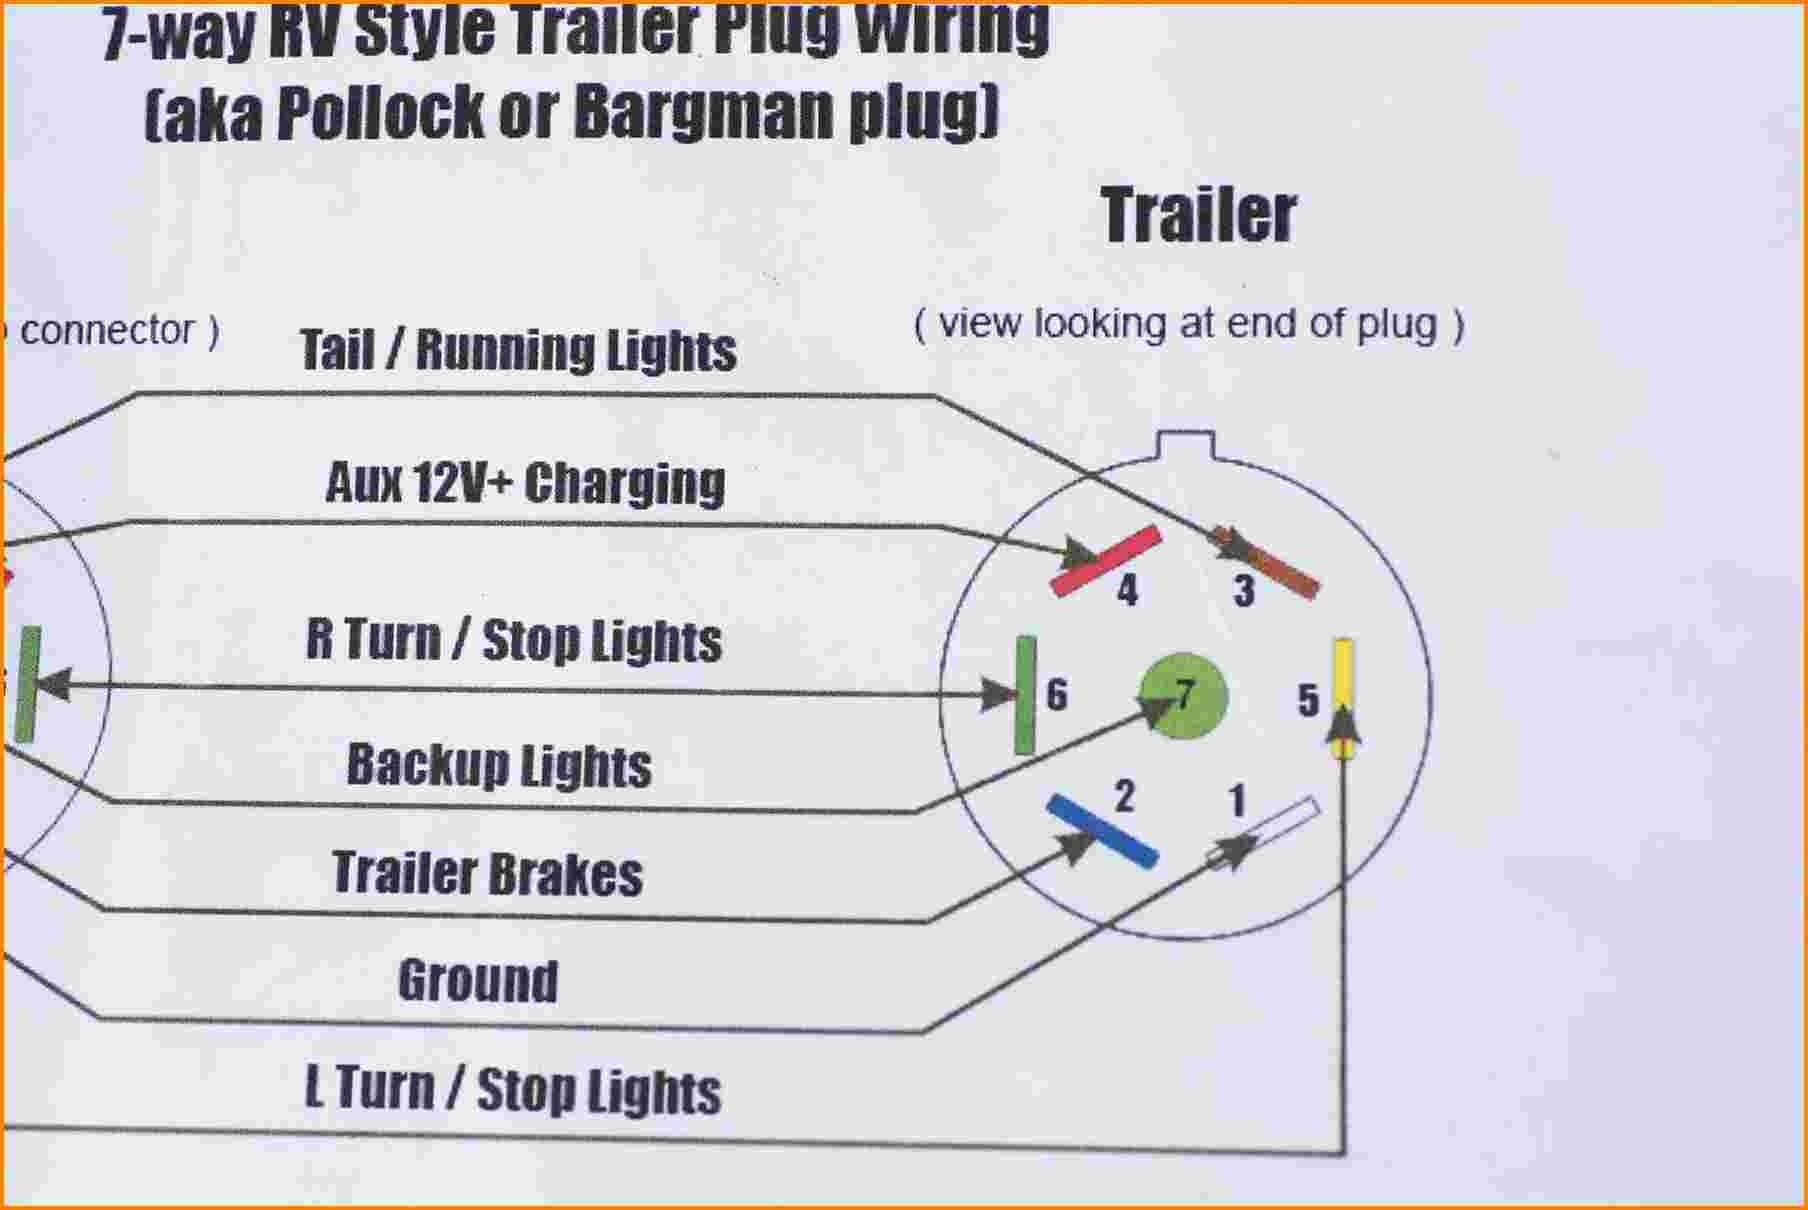 7 way trailer plug wiring diagram ford | free wiring diagram 18 free schematic and wiring diagram for f250 trailer wiring diagram for tent trailer #12